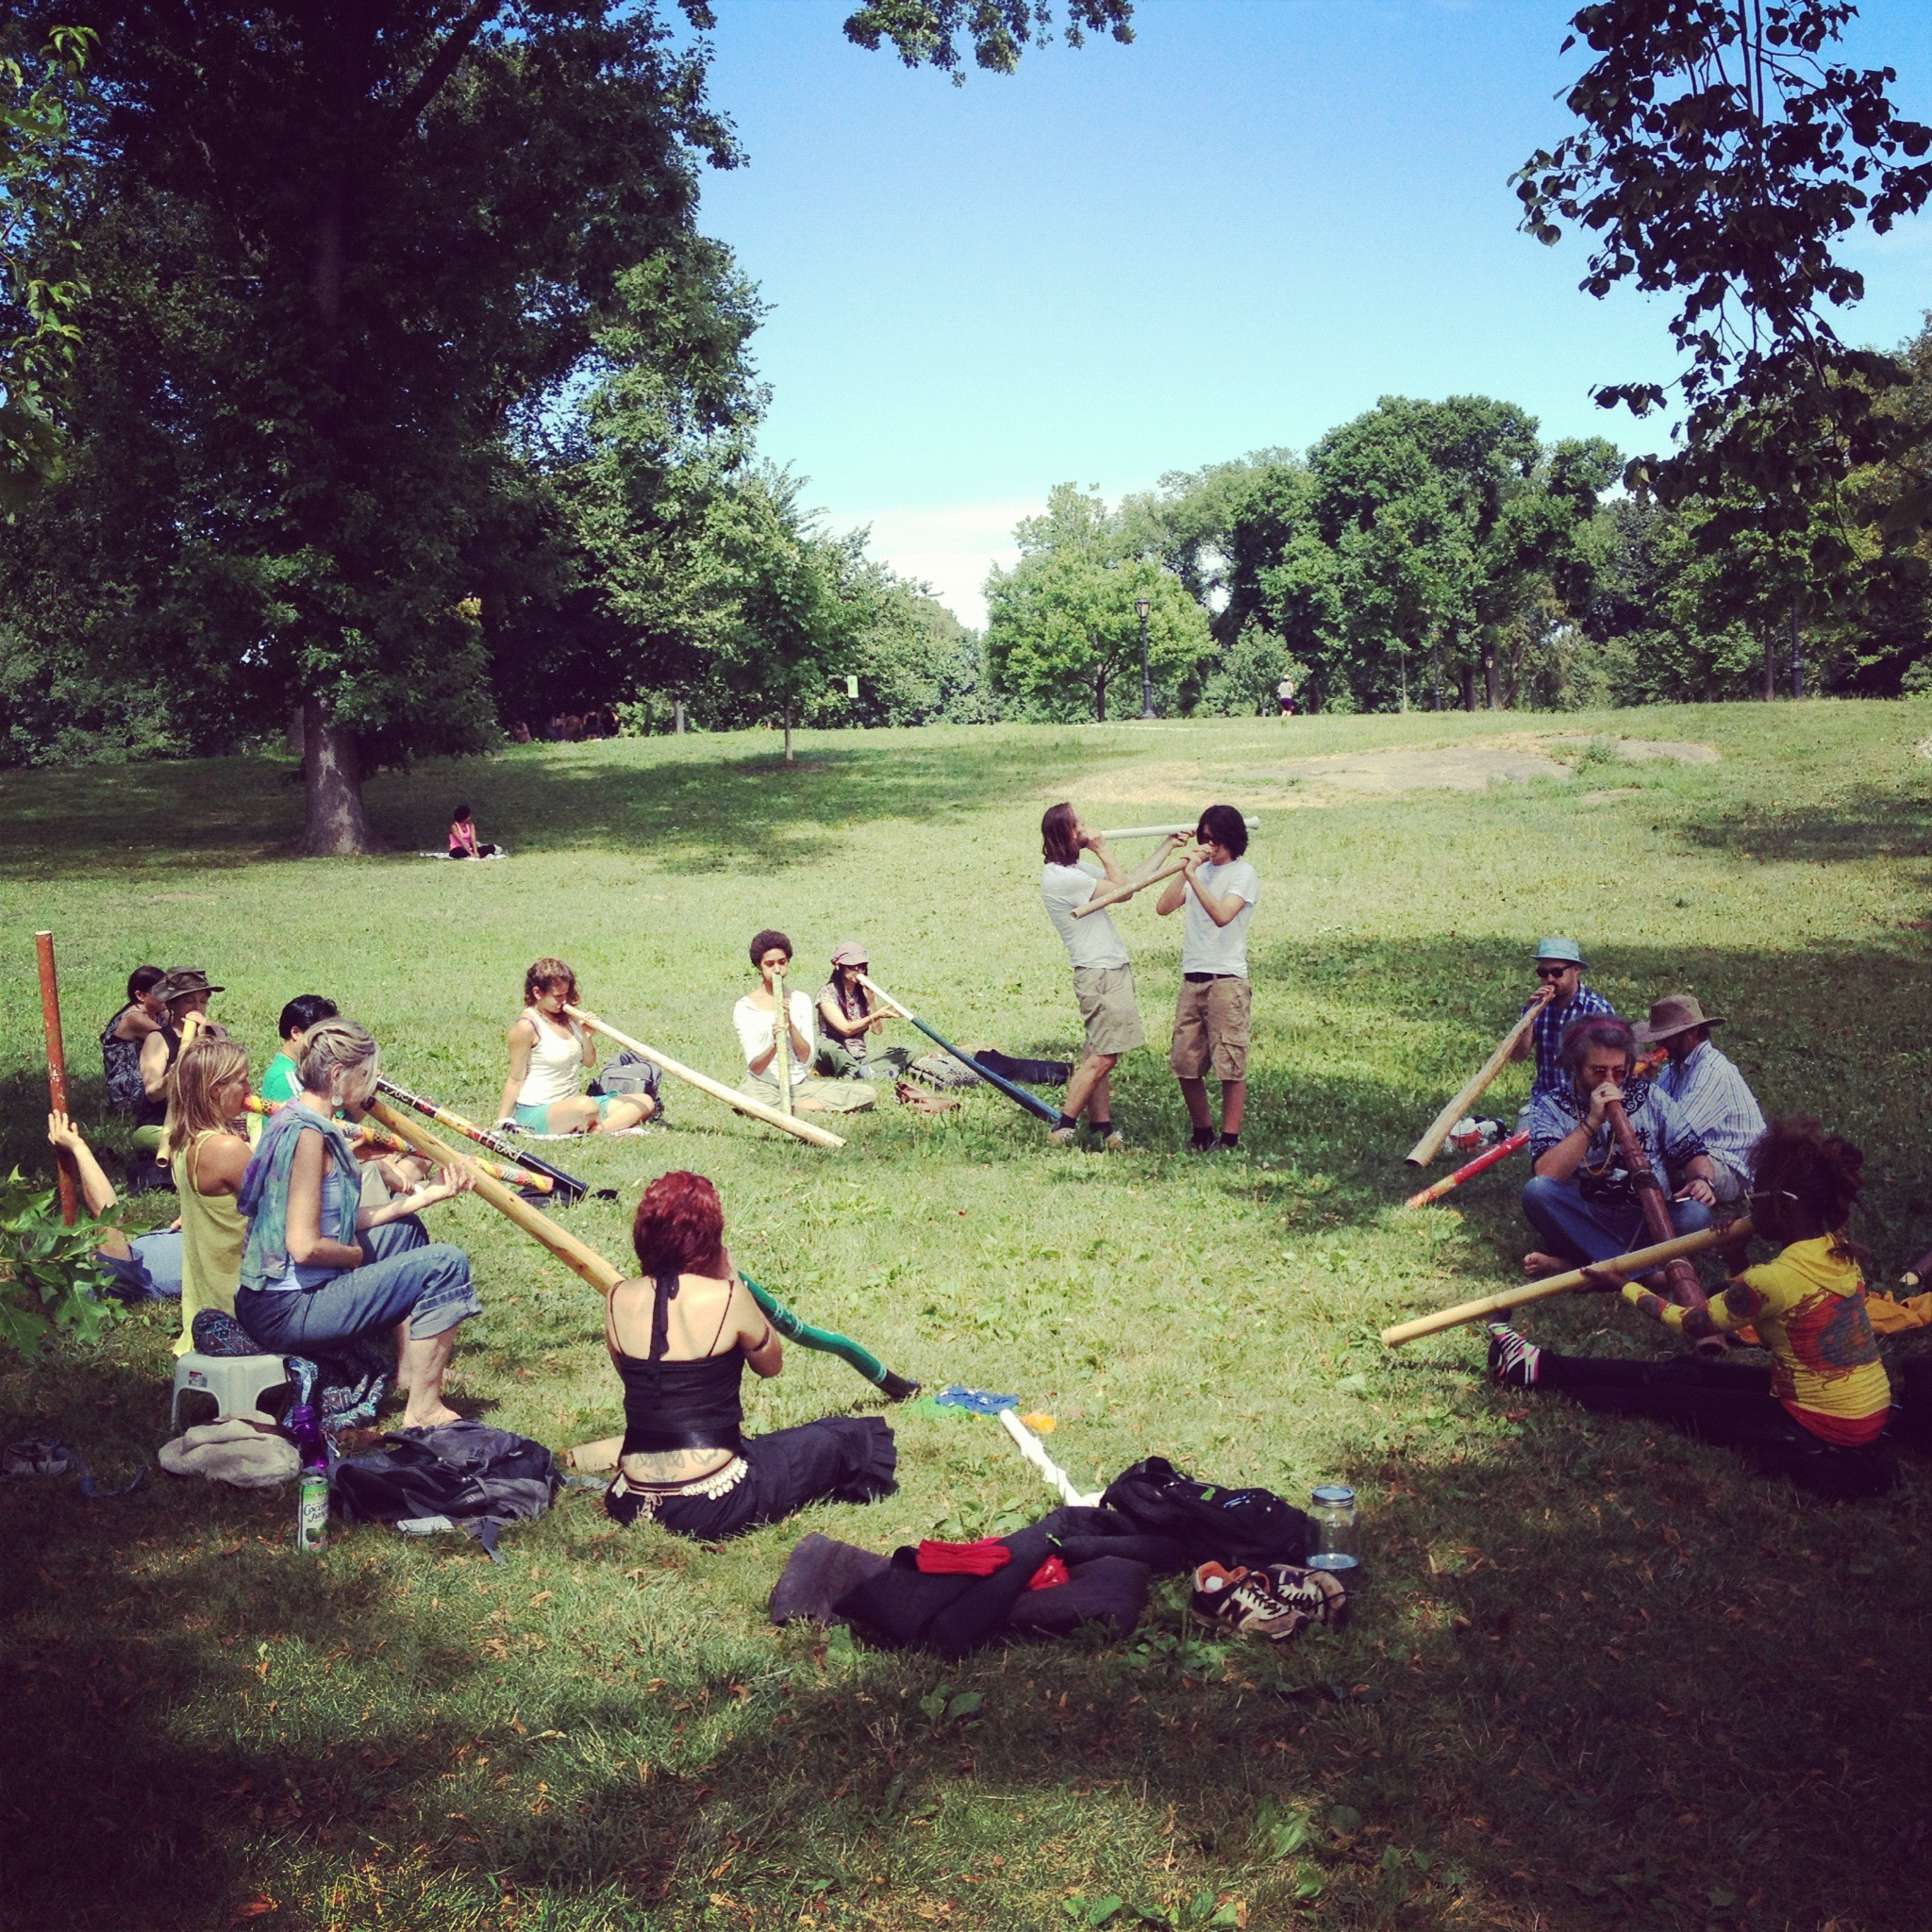 Didgeridoo Class, Lessons, Programs, Courses in New York City's Central Park, San Francisco, Los Angeles, Connecticut